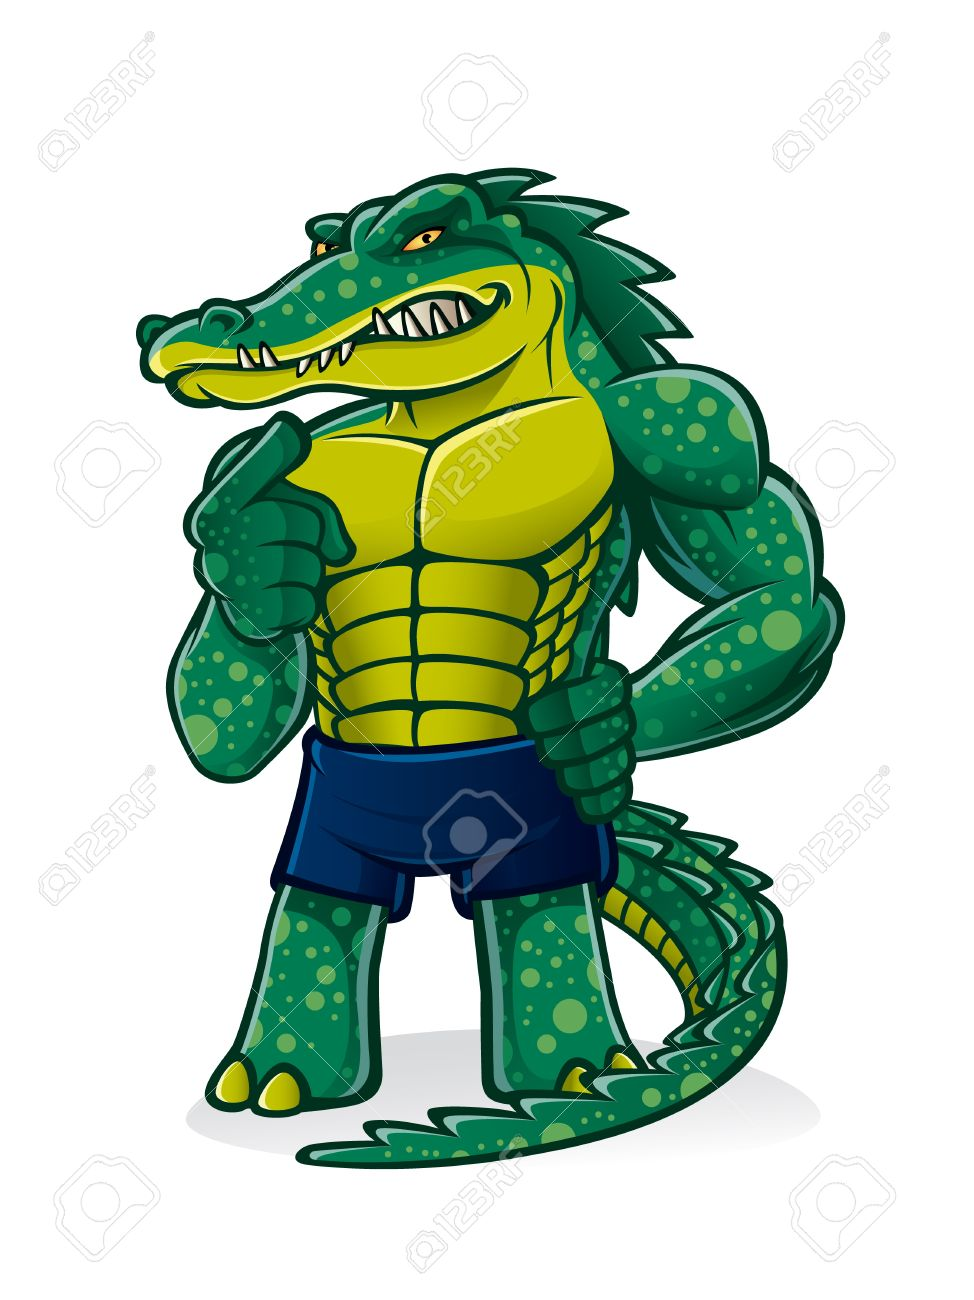 cartoon alligator that pugnacious, strong and muscular is challenging and pointed toward the audience invited to join him Stock Vector - 16974274